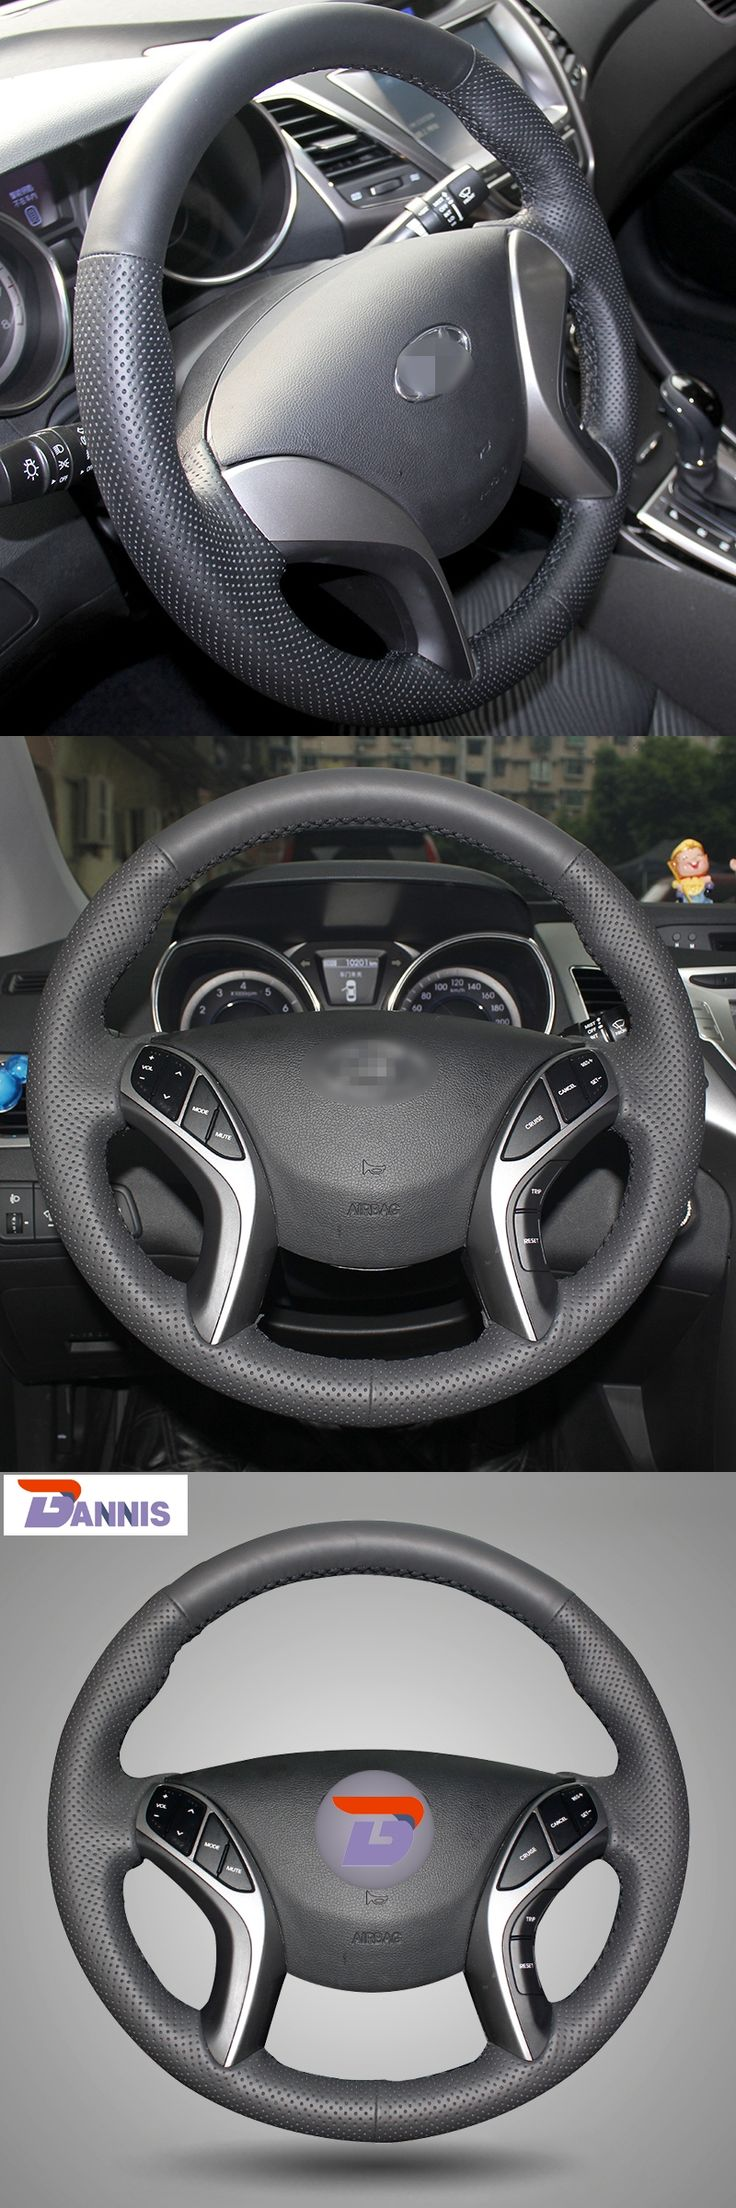 BANNIS Black Artificial Leather DIY Hand-stitched Steering Wheel Cover for Hyundai Elantra 2011-2014 Avante I30